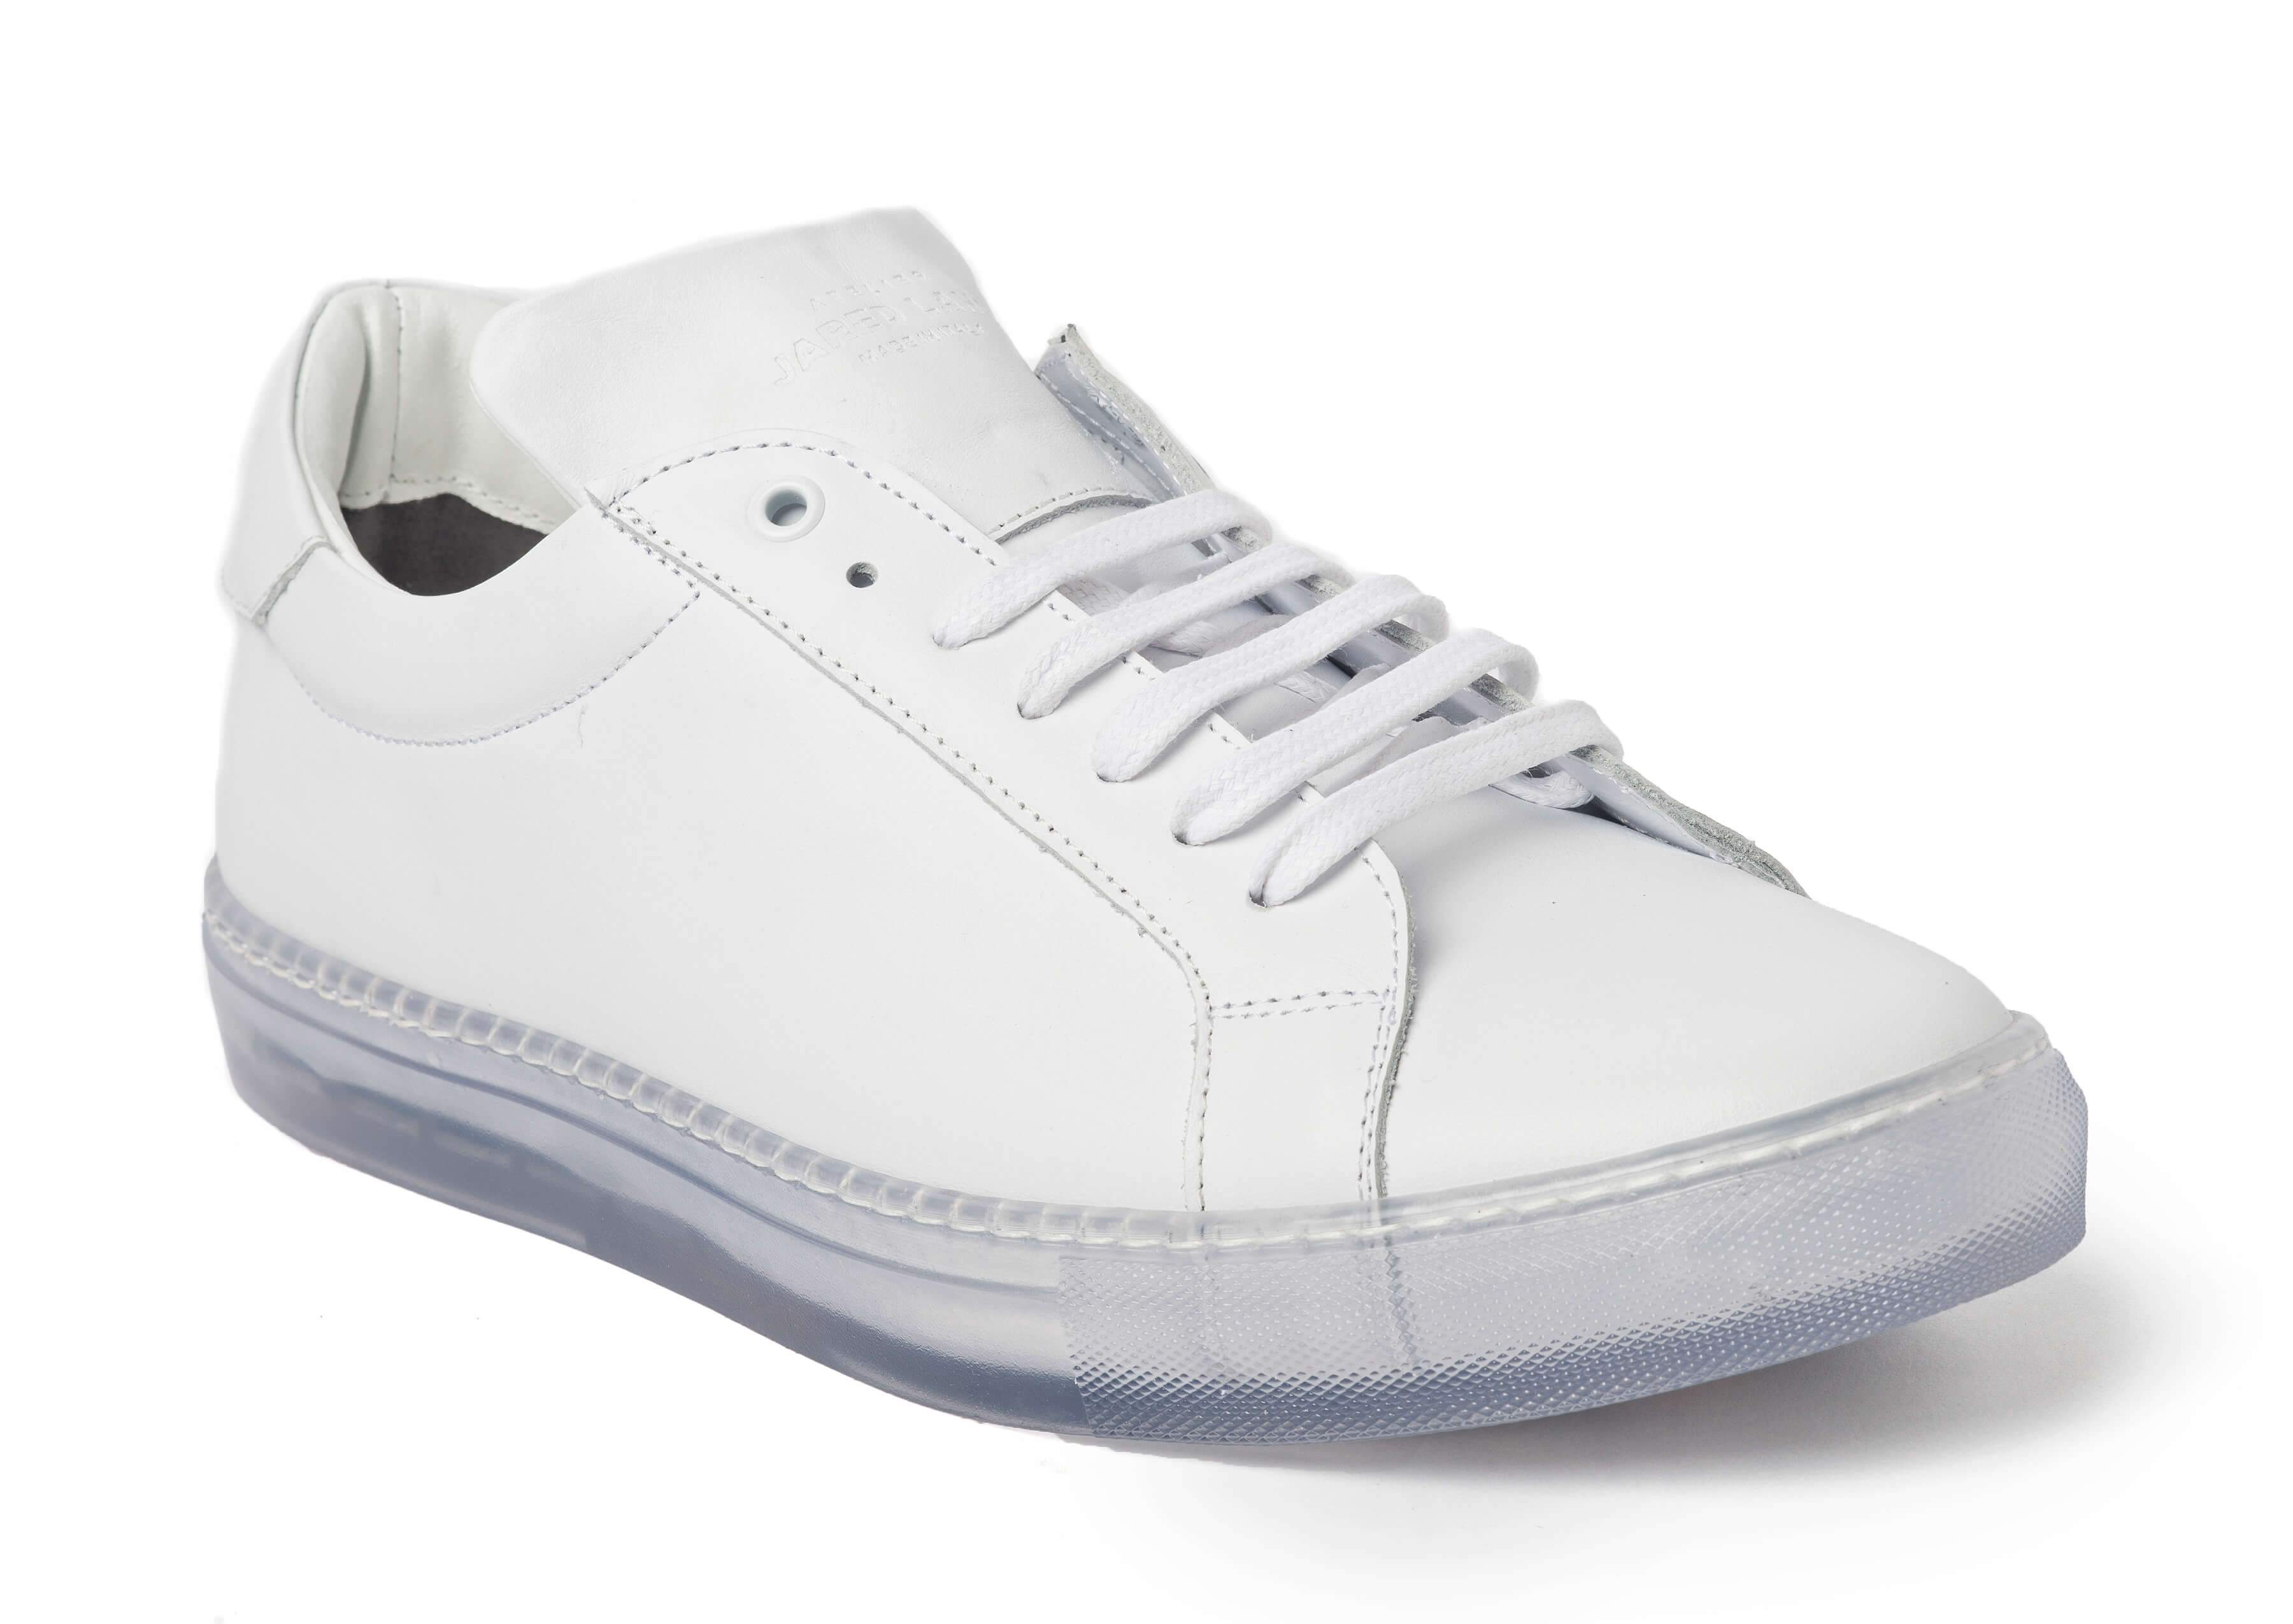 White Clear Sole Sneakers for Men - Main 1818-CRW - Jared Lang